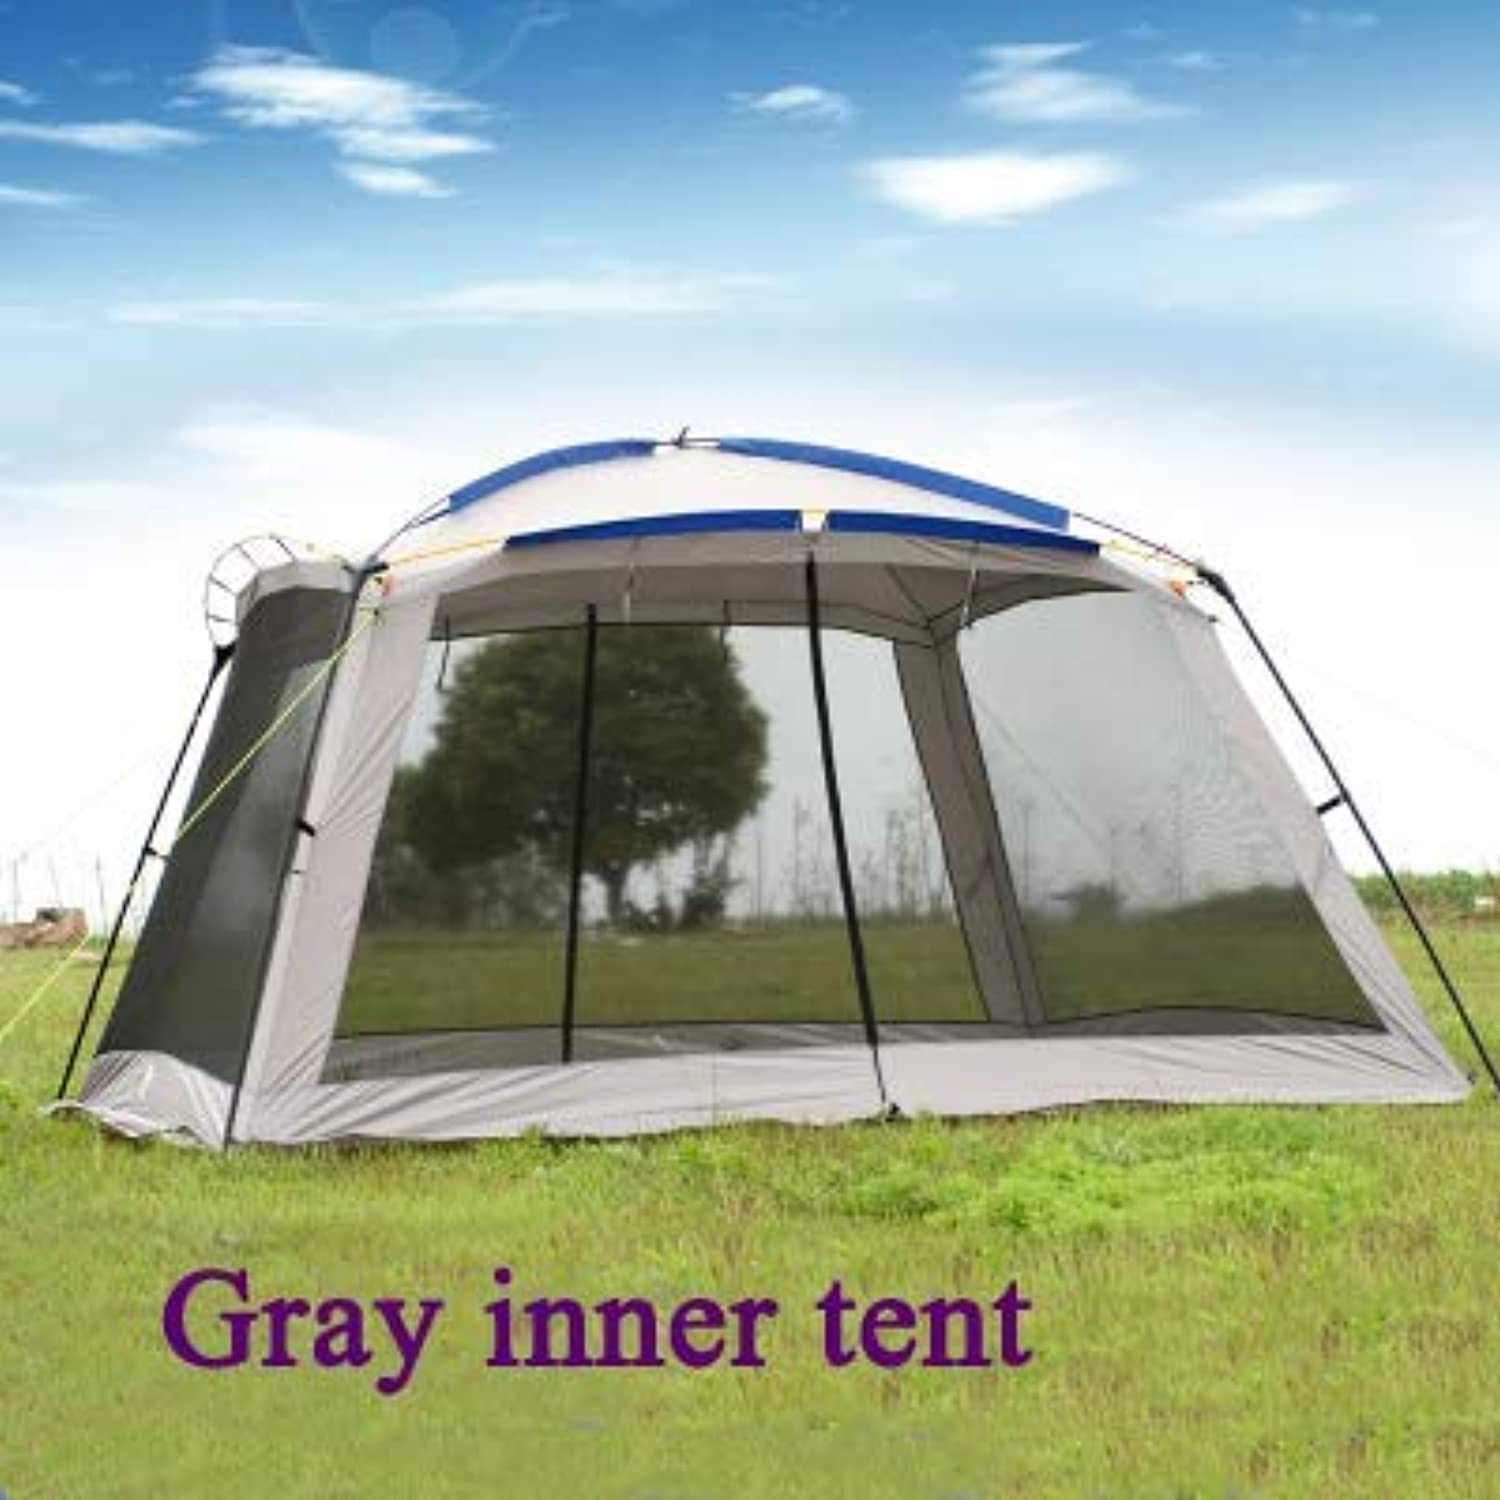 GFF CHYYZP Zelt Big Space Sonnencreme Anti-Moskito Regen Windy Outdoor Camping Zelt Multifunctionalsun Shelter